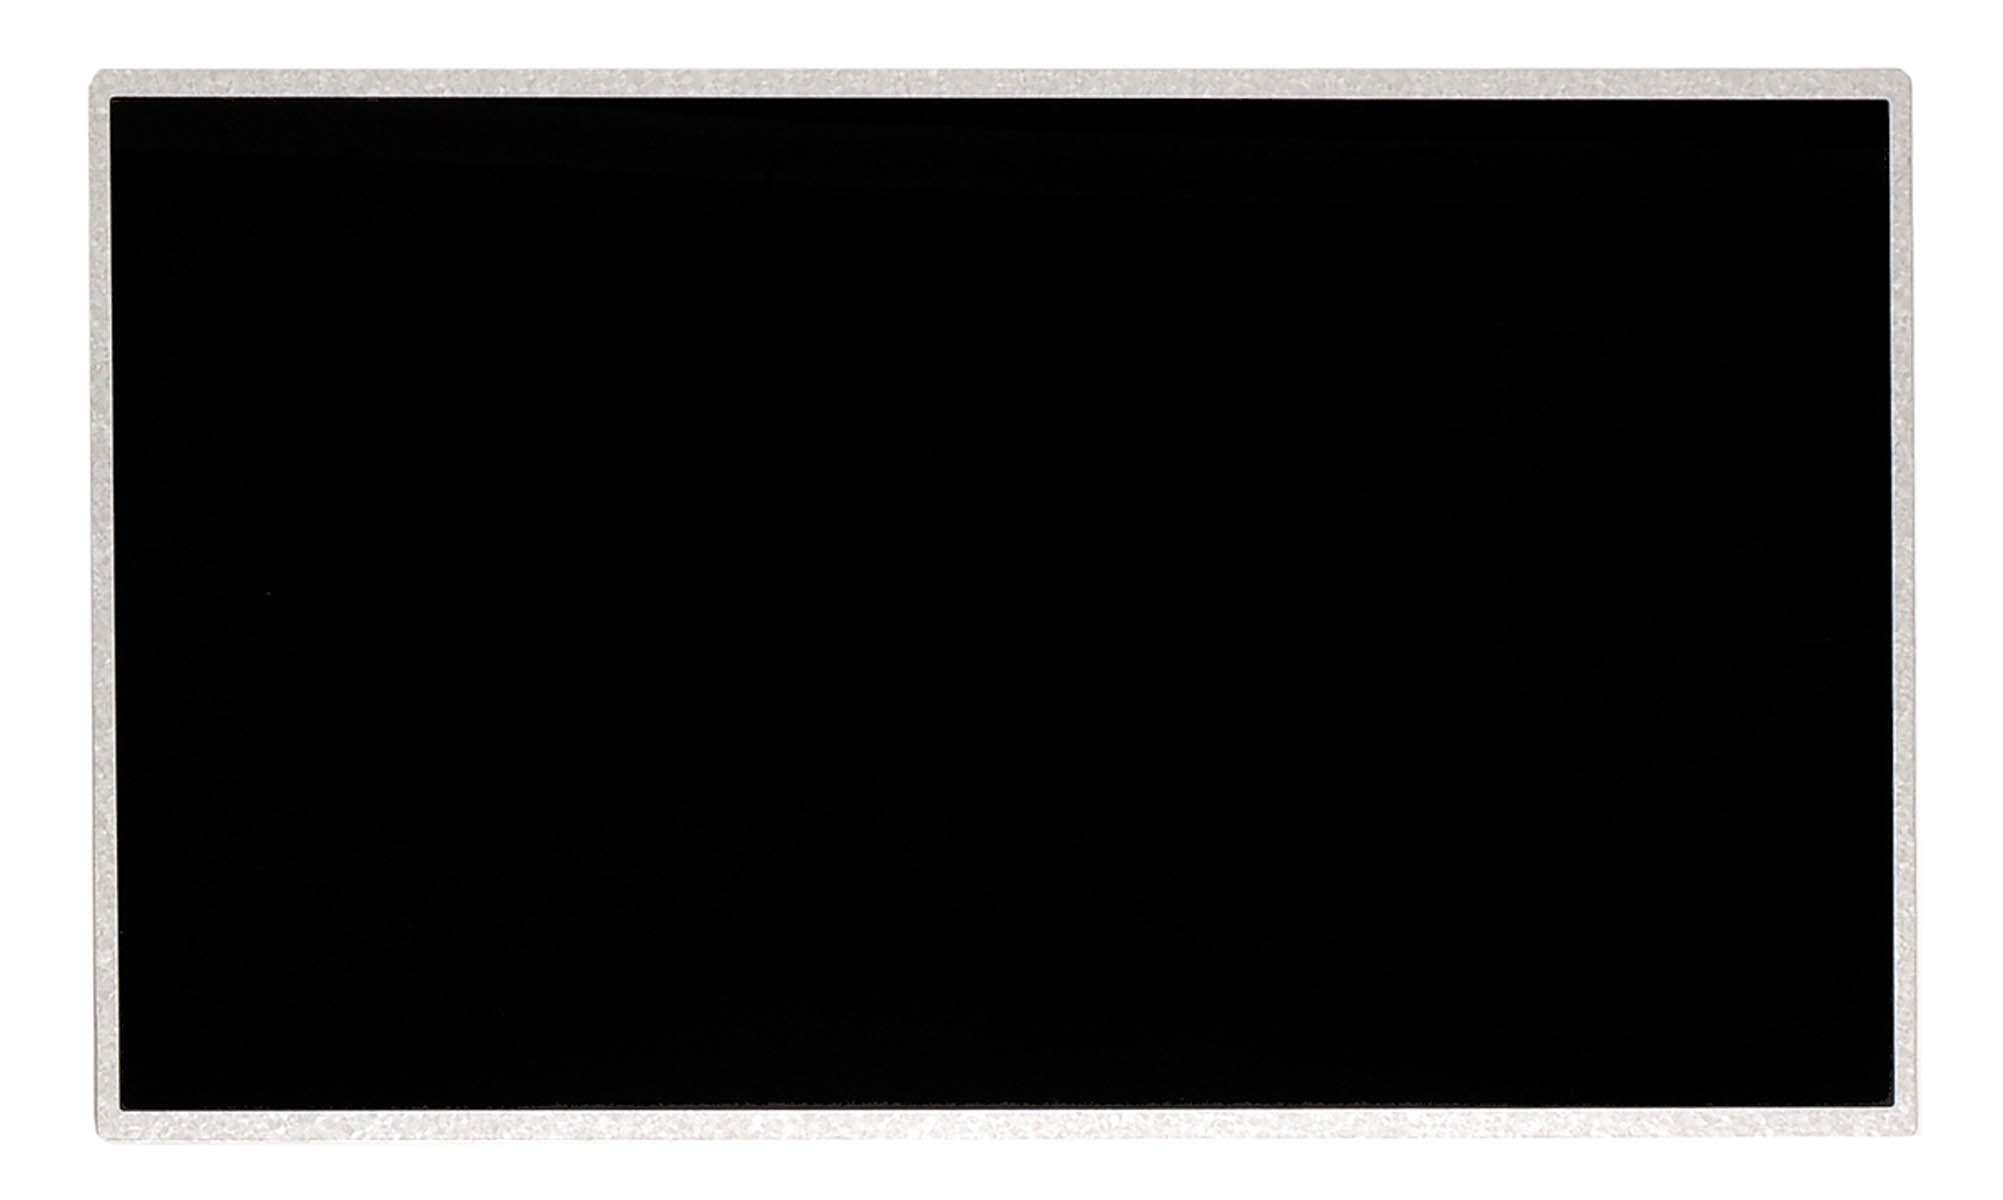 LAPTOP-LCD-SCREEN-FOR-TOSHIBA-SATELLITE-L755-S5161-15-6-034-WXGA-HD thumbnail 6